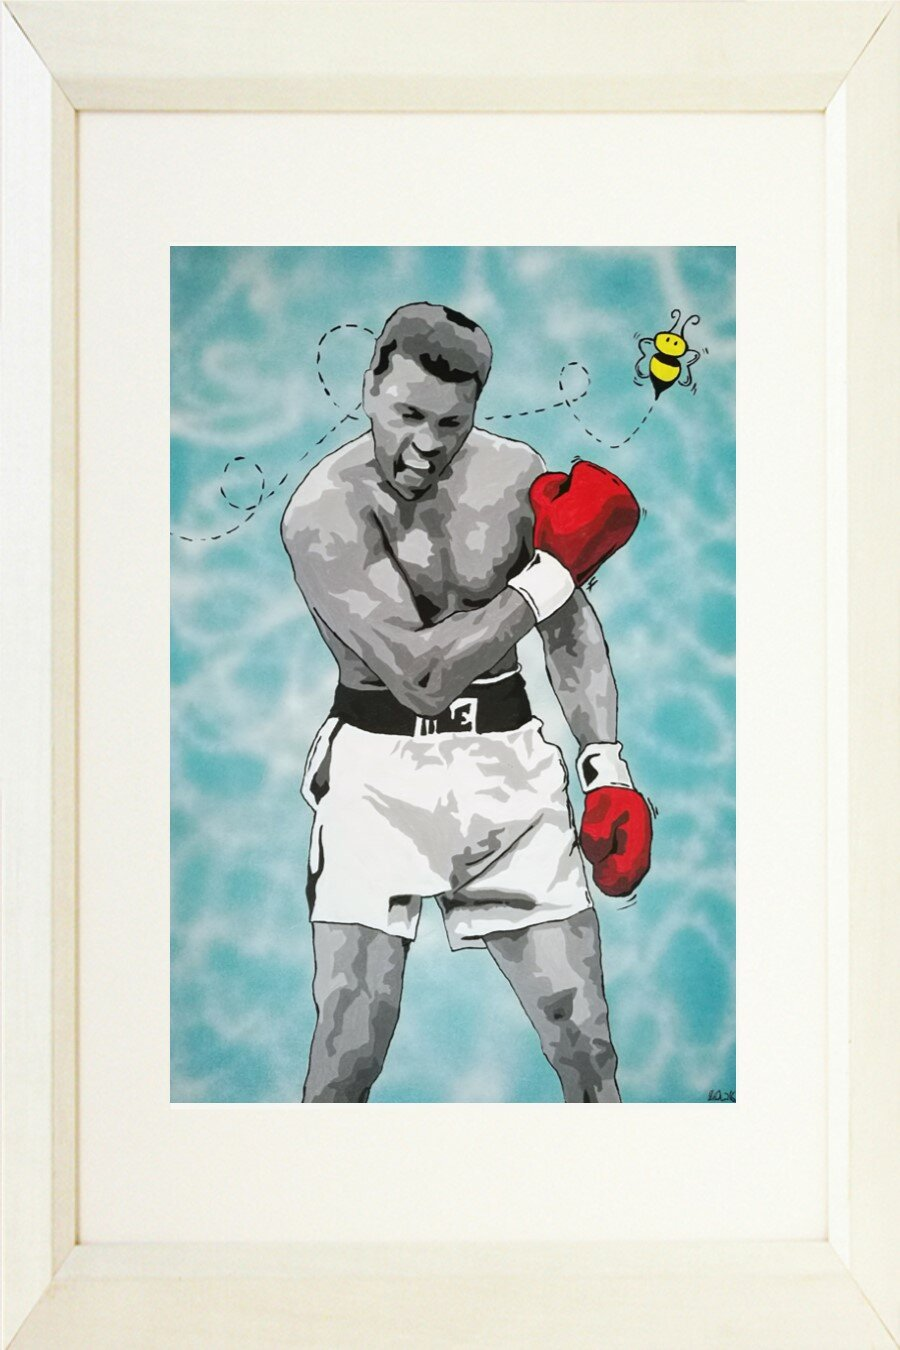 MUHAMMAD ALI FLOAT LIKE A BUTTERFLY STING LIKE A BEE PHOTO ON FRAMED CANVAS AR